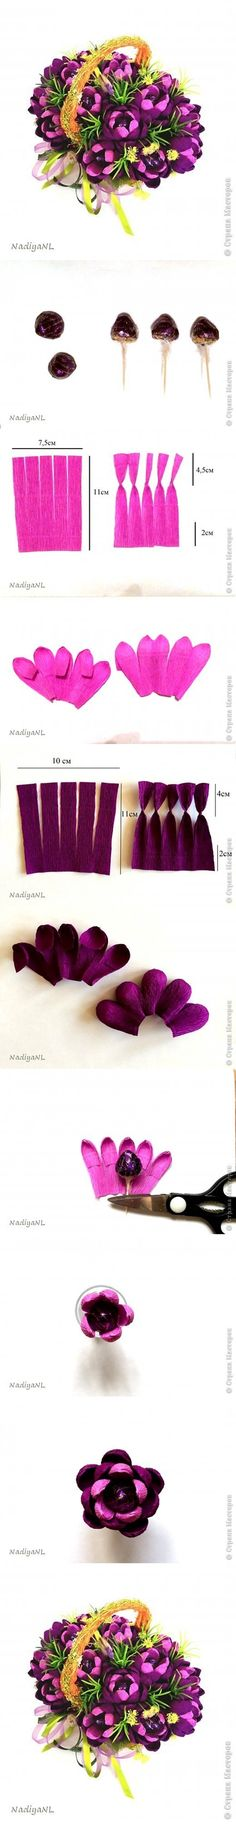 chocolate flower bouquet tutorial